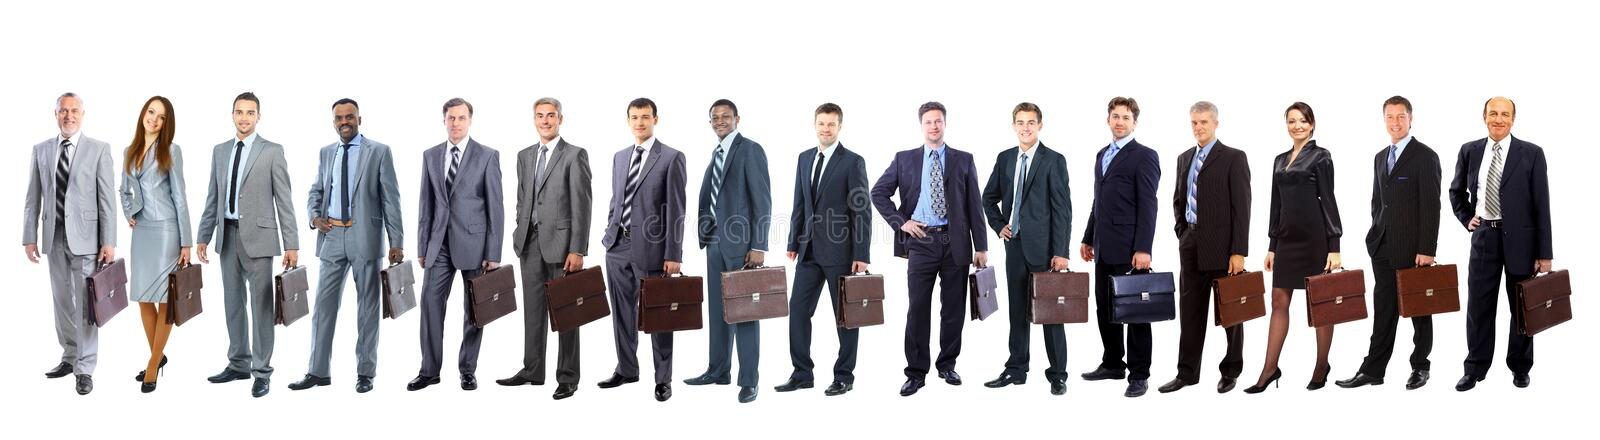 Download Young Attractive Business People Stock Image - Image: 33044567